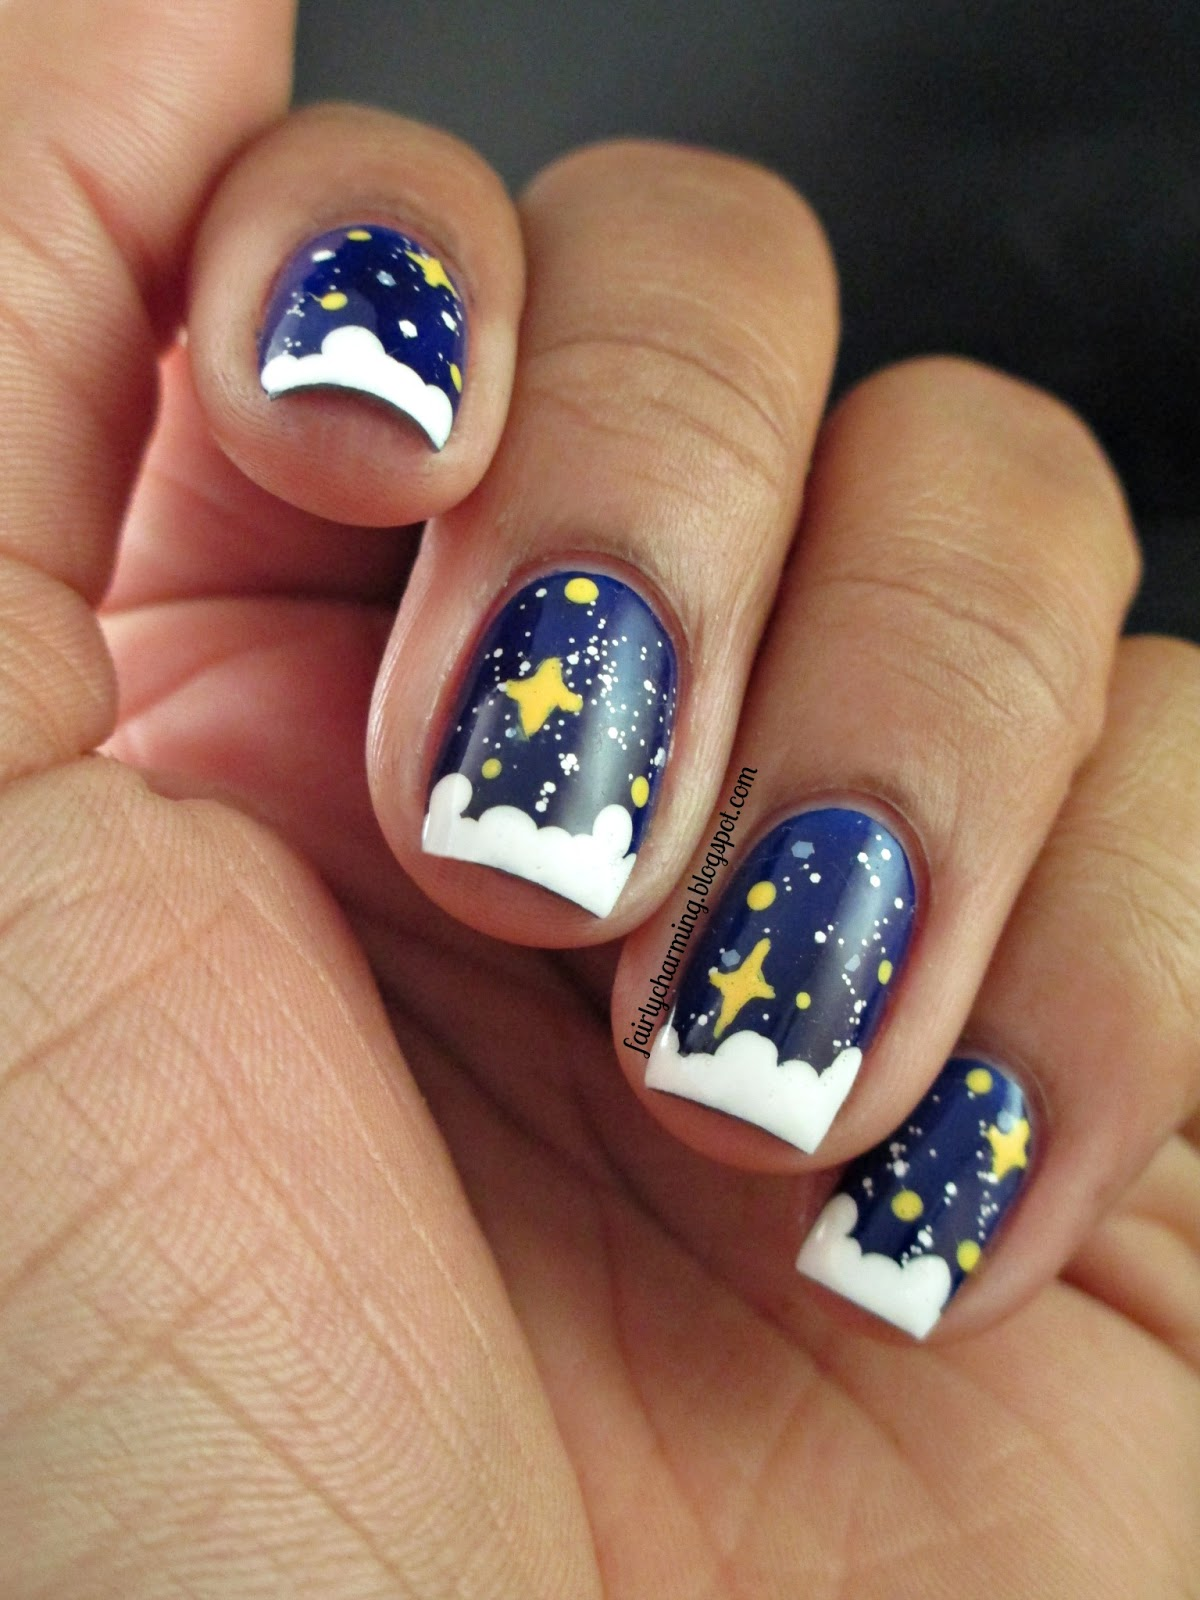 MLK, Martin Luther King Jr, I Have A Dream, dreams, dream land, slumber land, night sky, clouds, stars, Revlon Royal, nails, nail art, nail design, mani